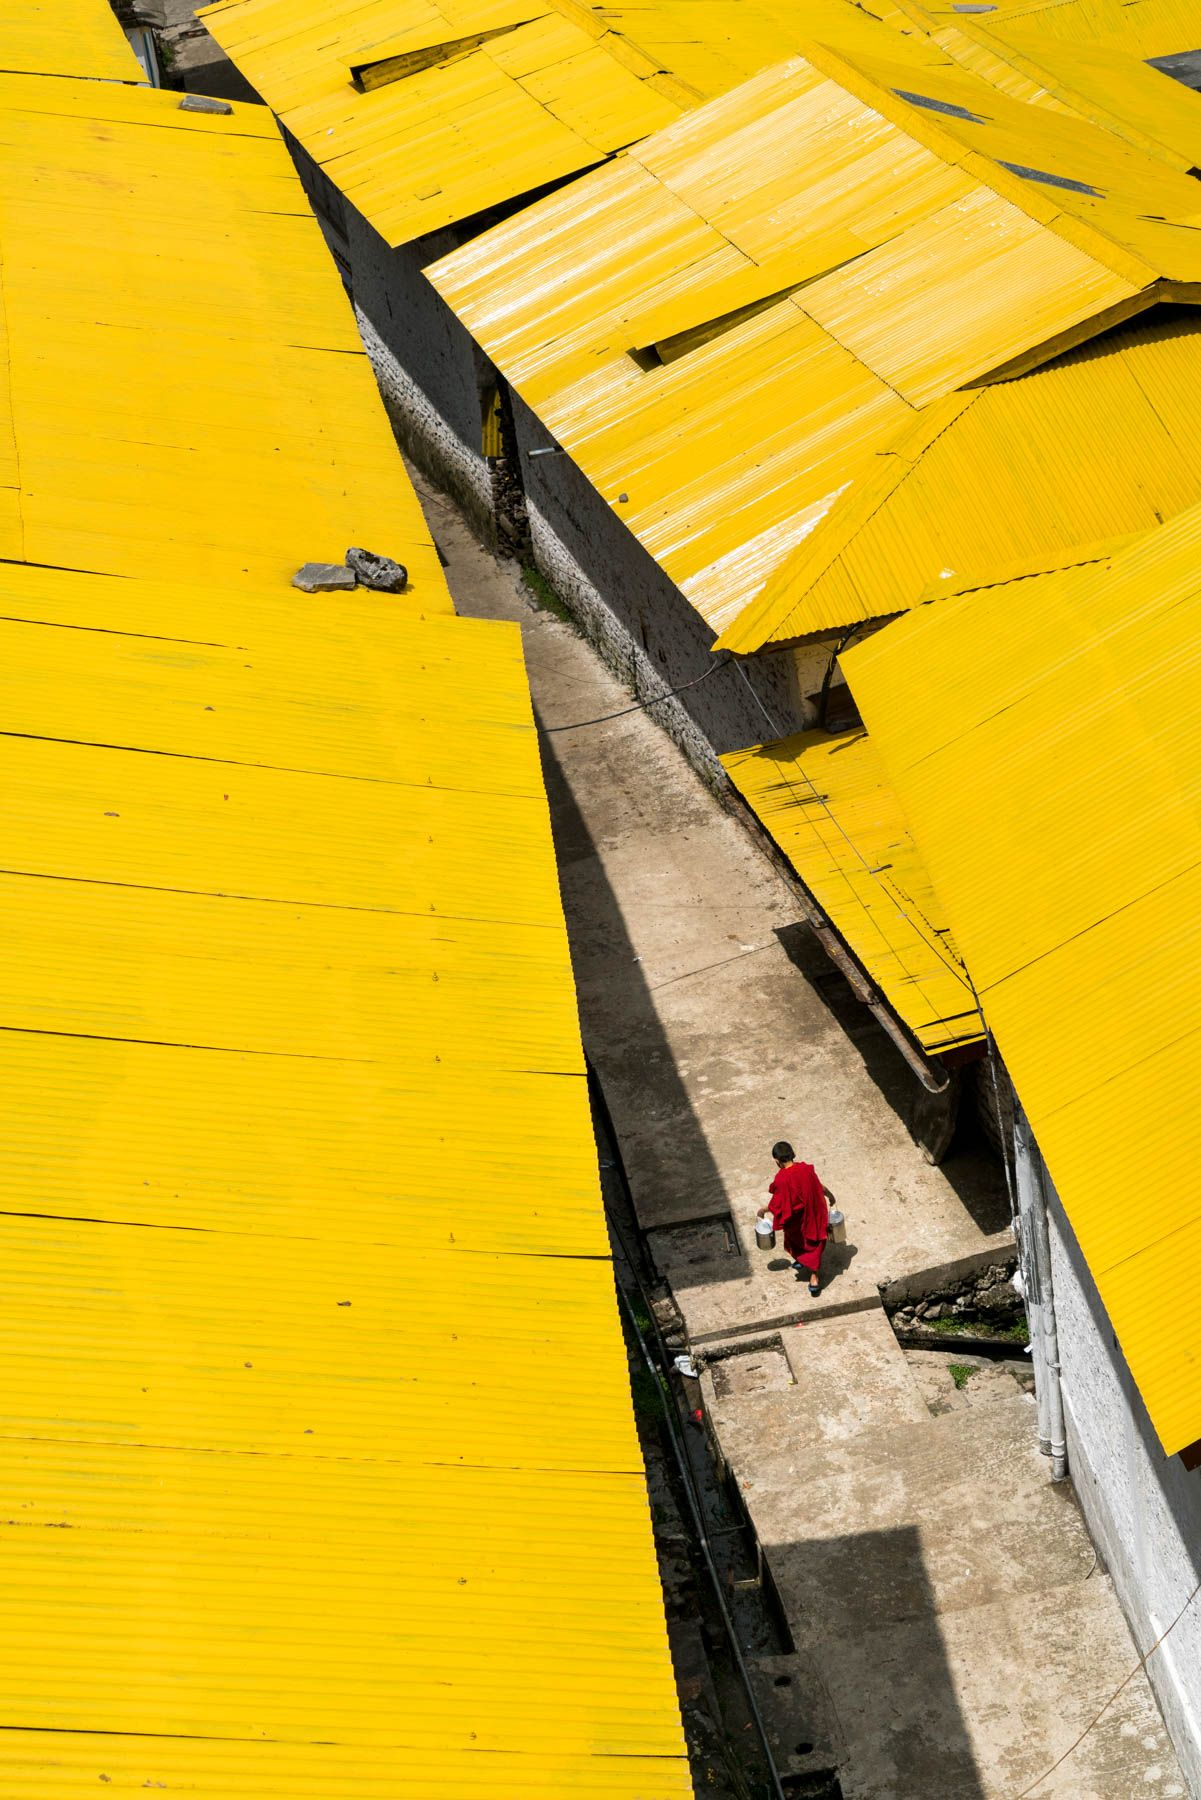 A young monk in red robes runs through a sea of yellow rooftops at Tawang Monastery, the second largest Buddhist monastery in the world. The monastery is located in Tawang, a town in the far northwest reaches of Arunachal Pradesh, a state in Northeast India.